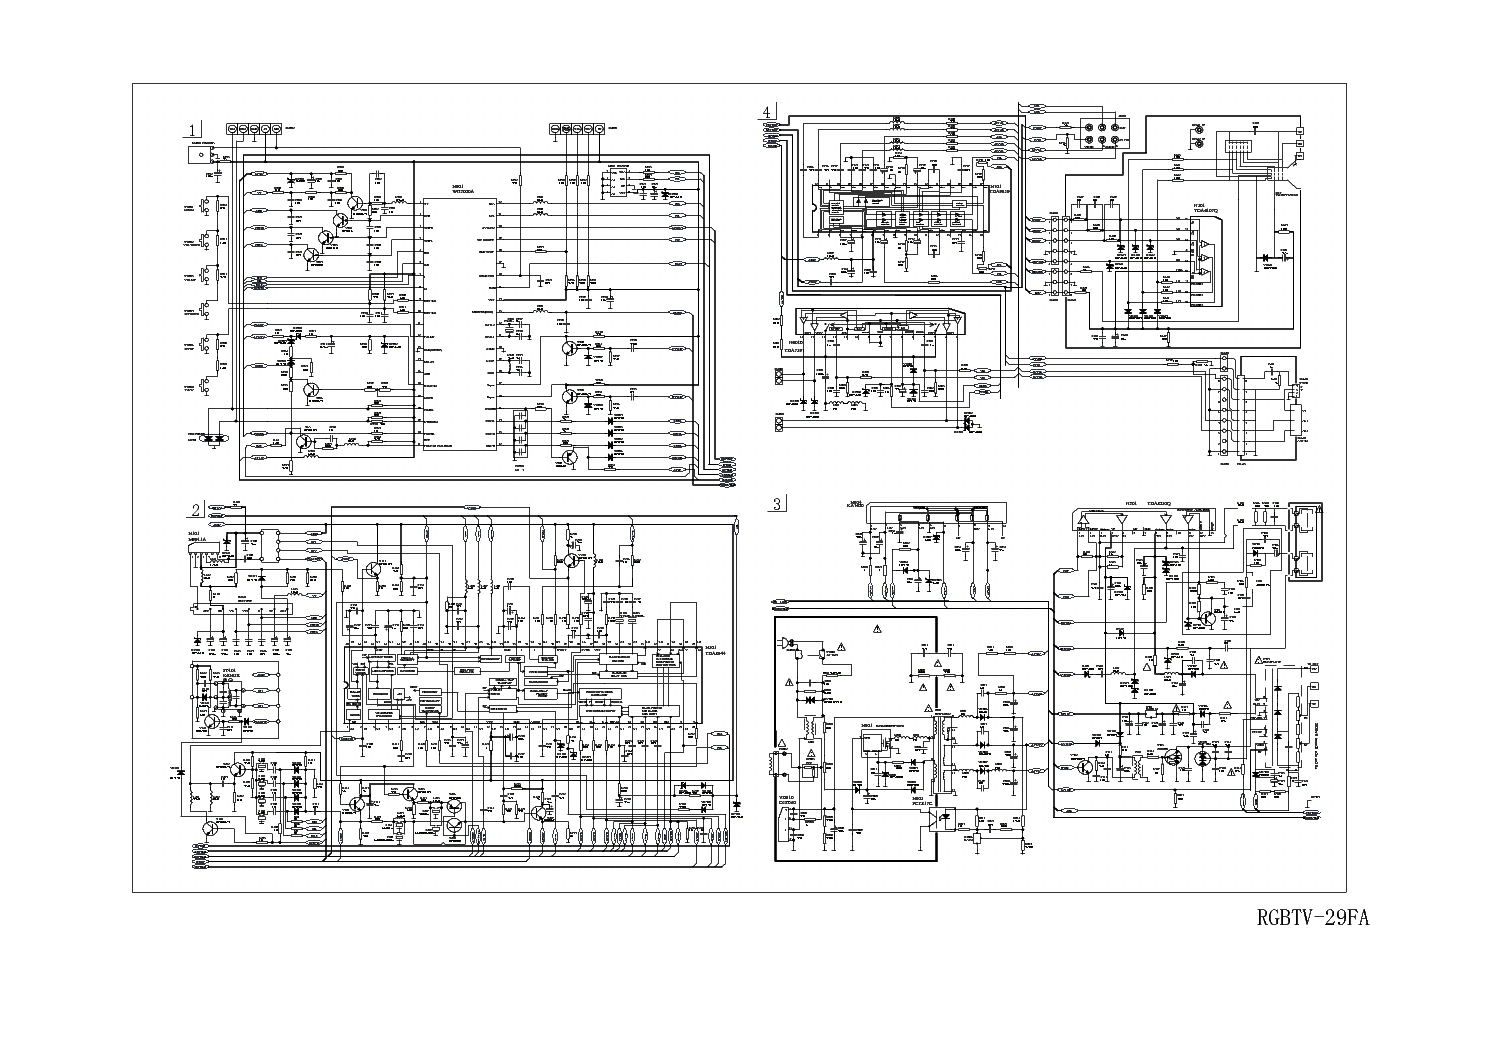 haier tv 29fa circuit diagram service manual download, schematics Electronic Circuit Diagram Software Free haier tv 29fa circuit diagram service manual (1st page)